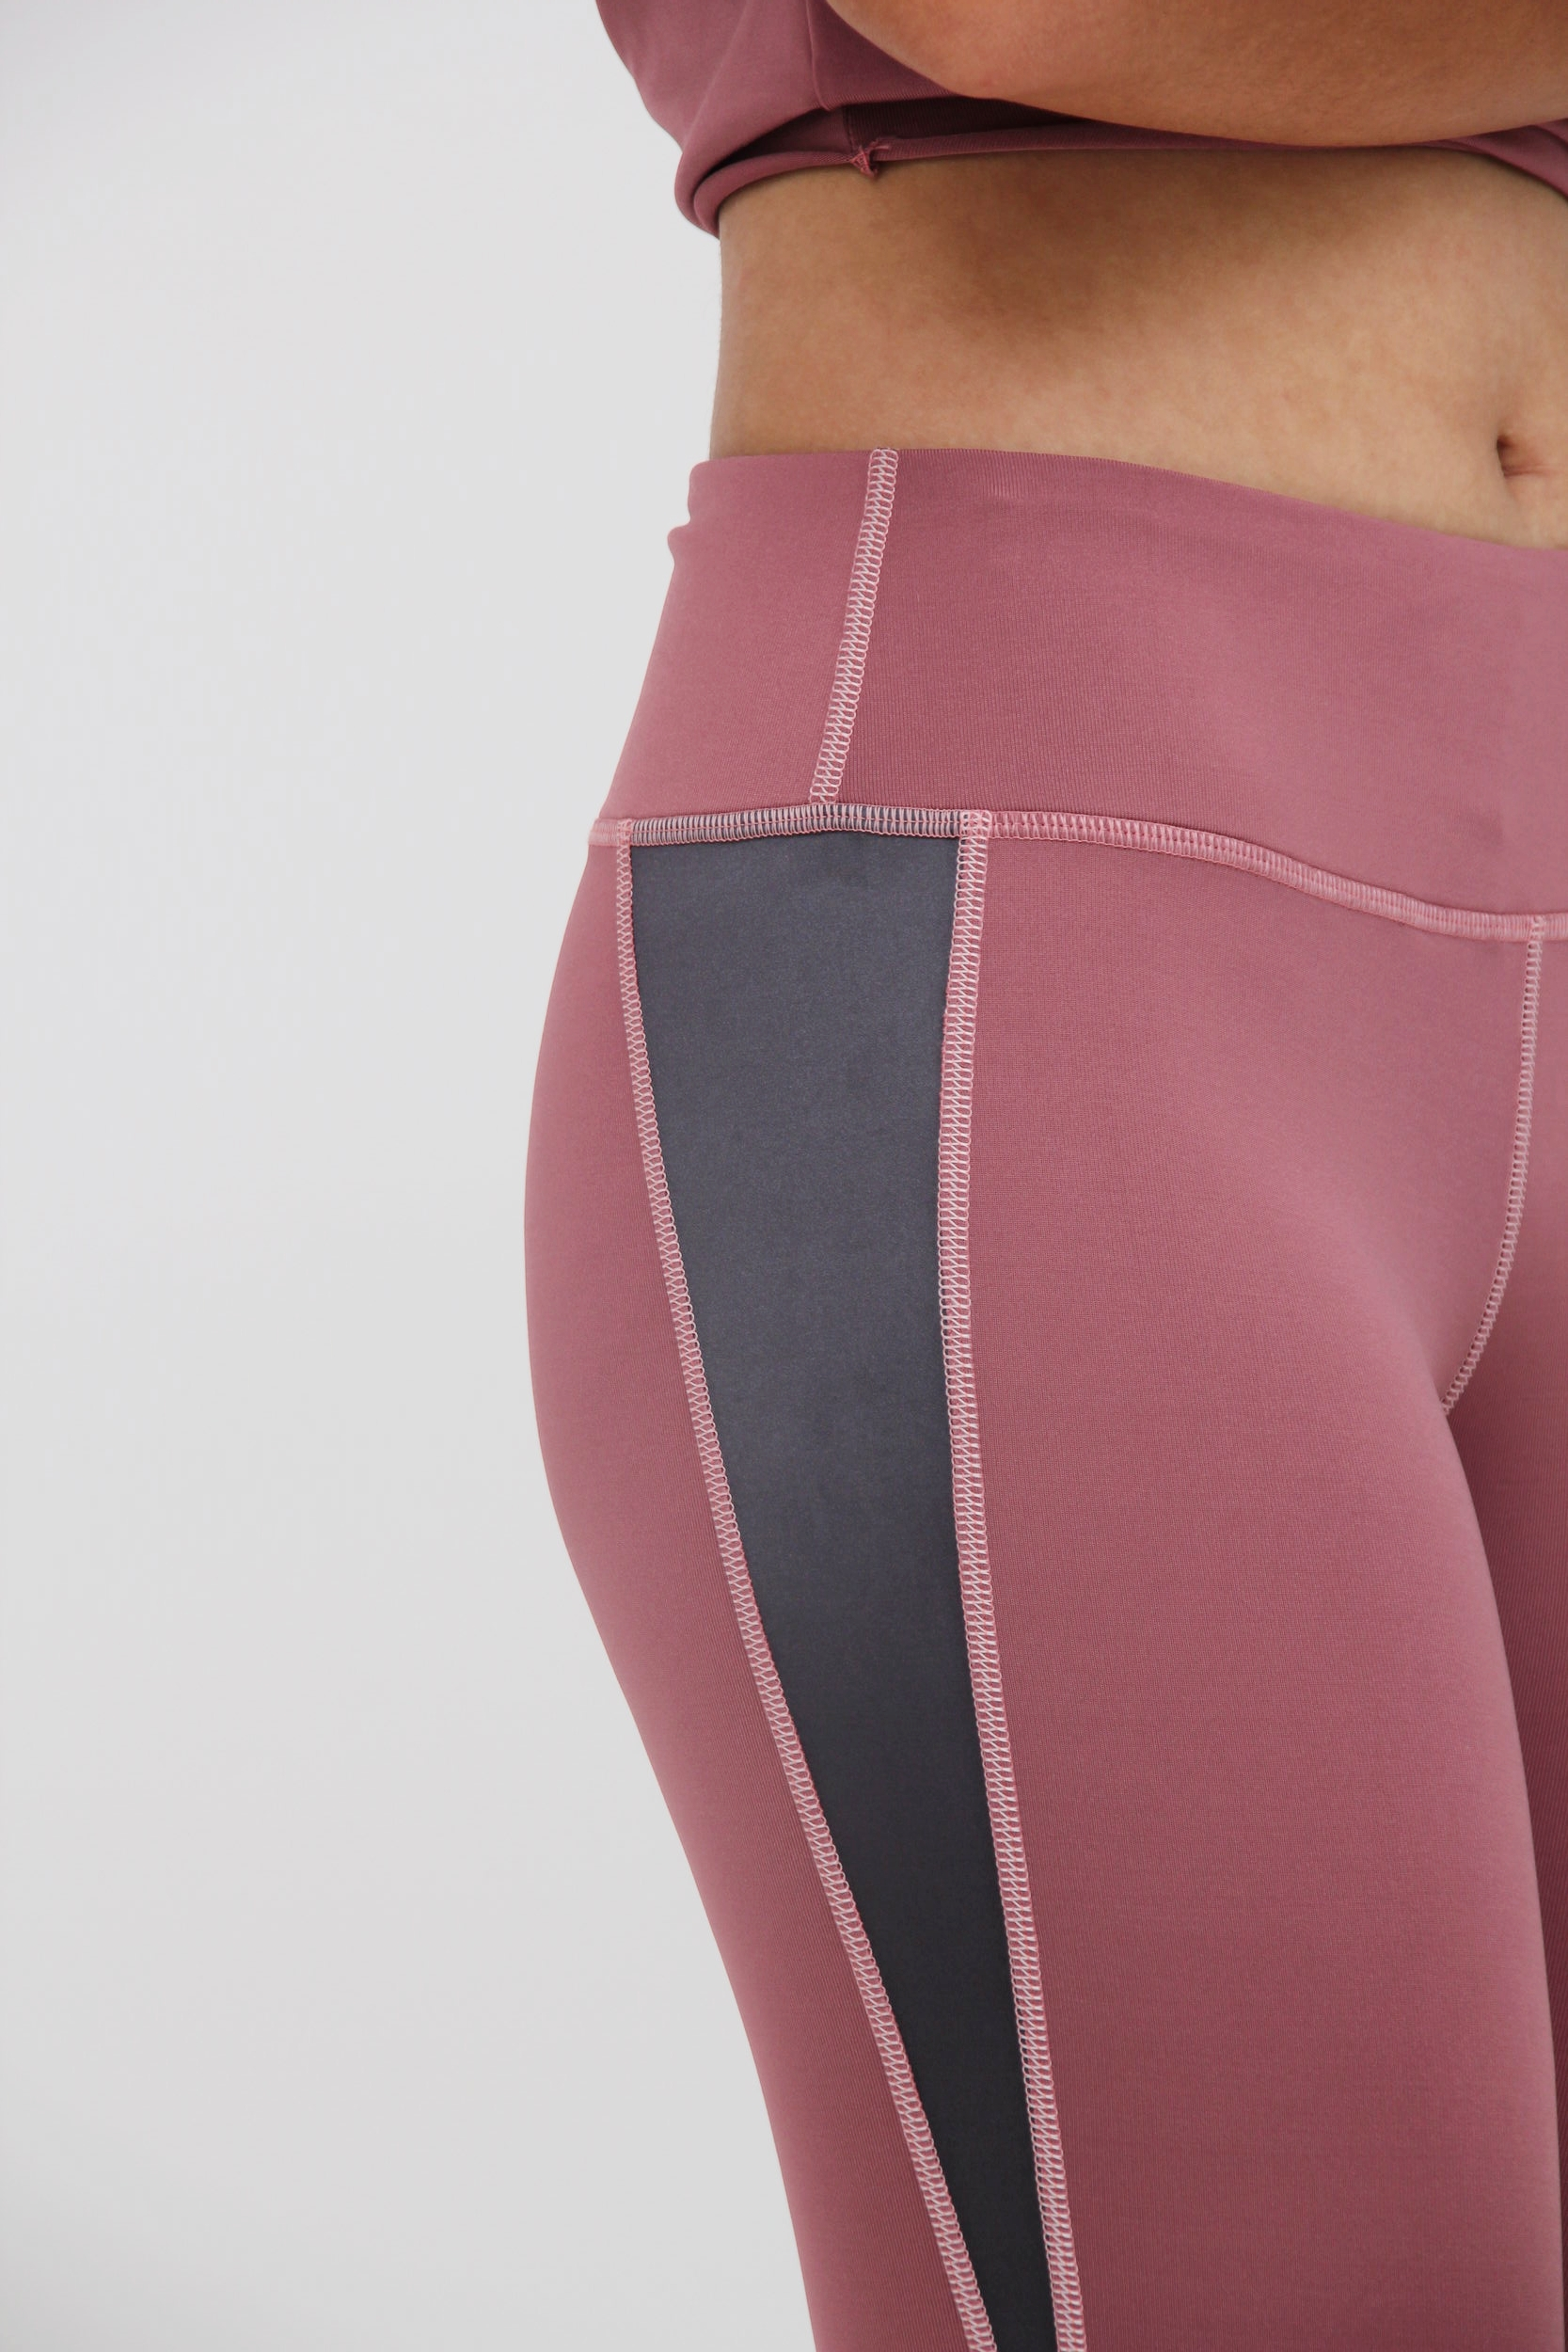 FLAT SEAMS - To minimize chafing (abrasion on skin) and no bulky edges sinking into skin.